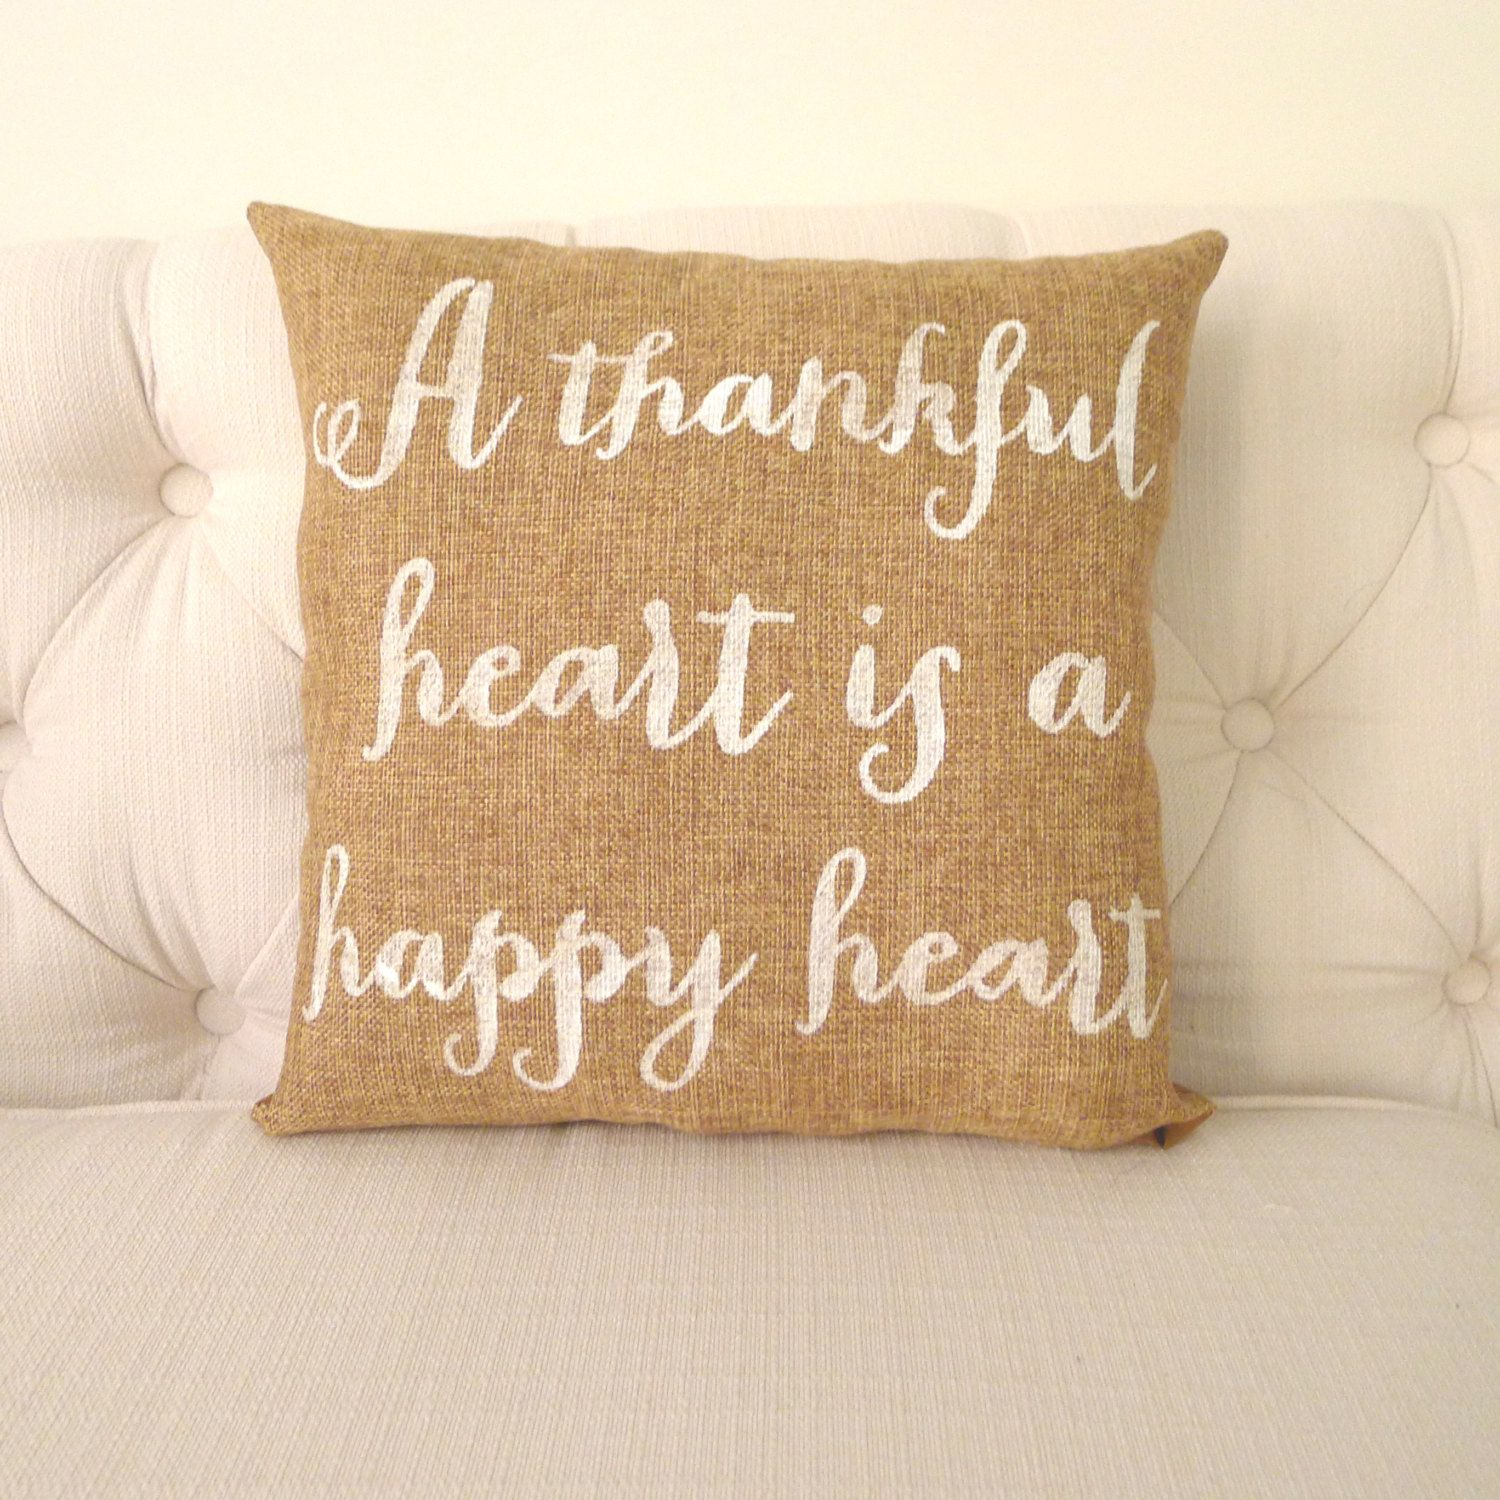 Thankful Heart Burlap Pillow Free Shipping By Katiescarlettco, $2650